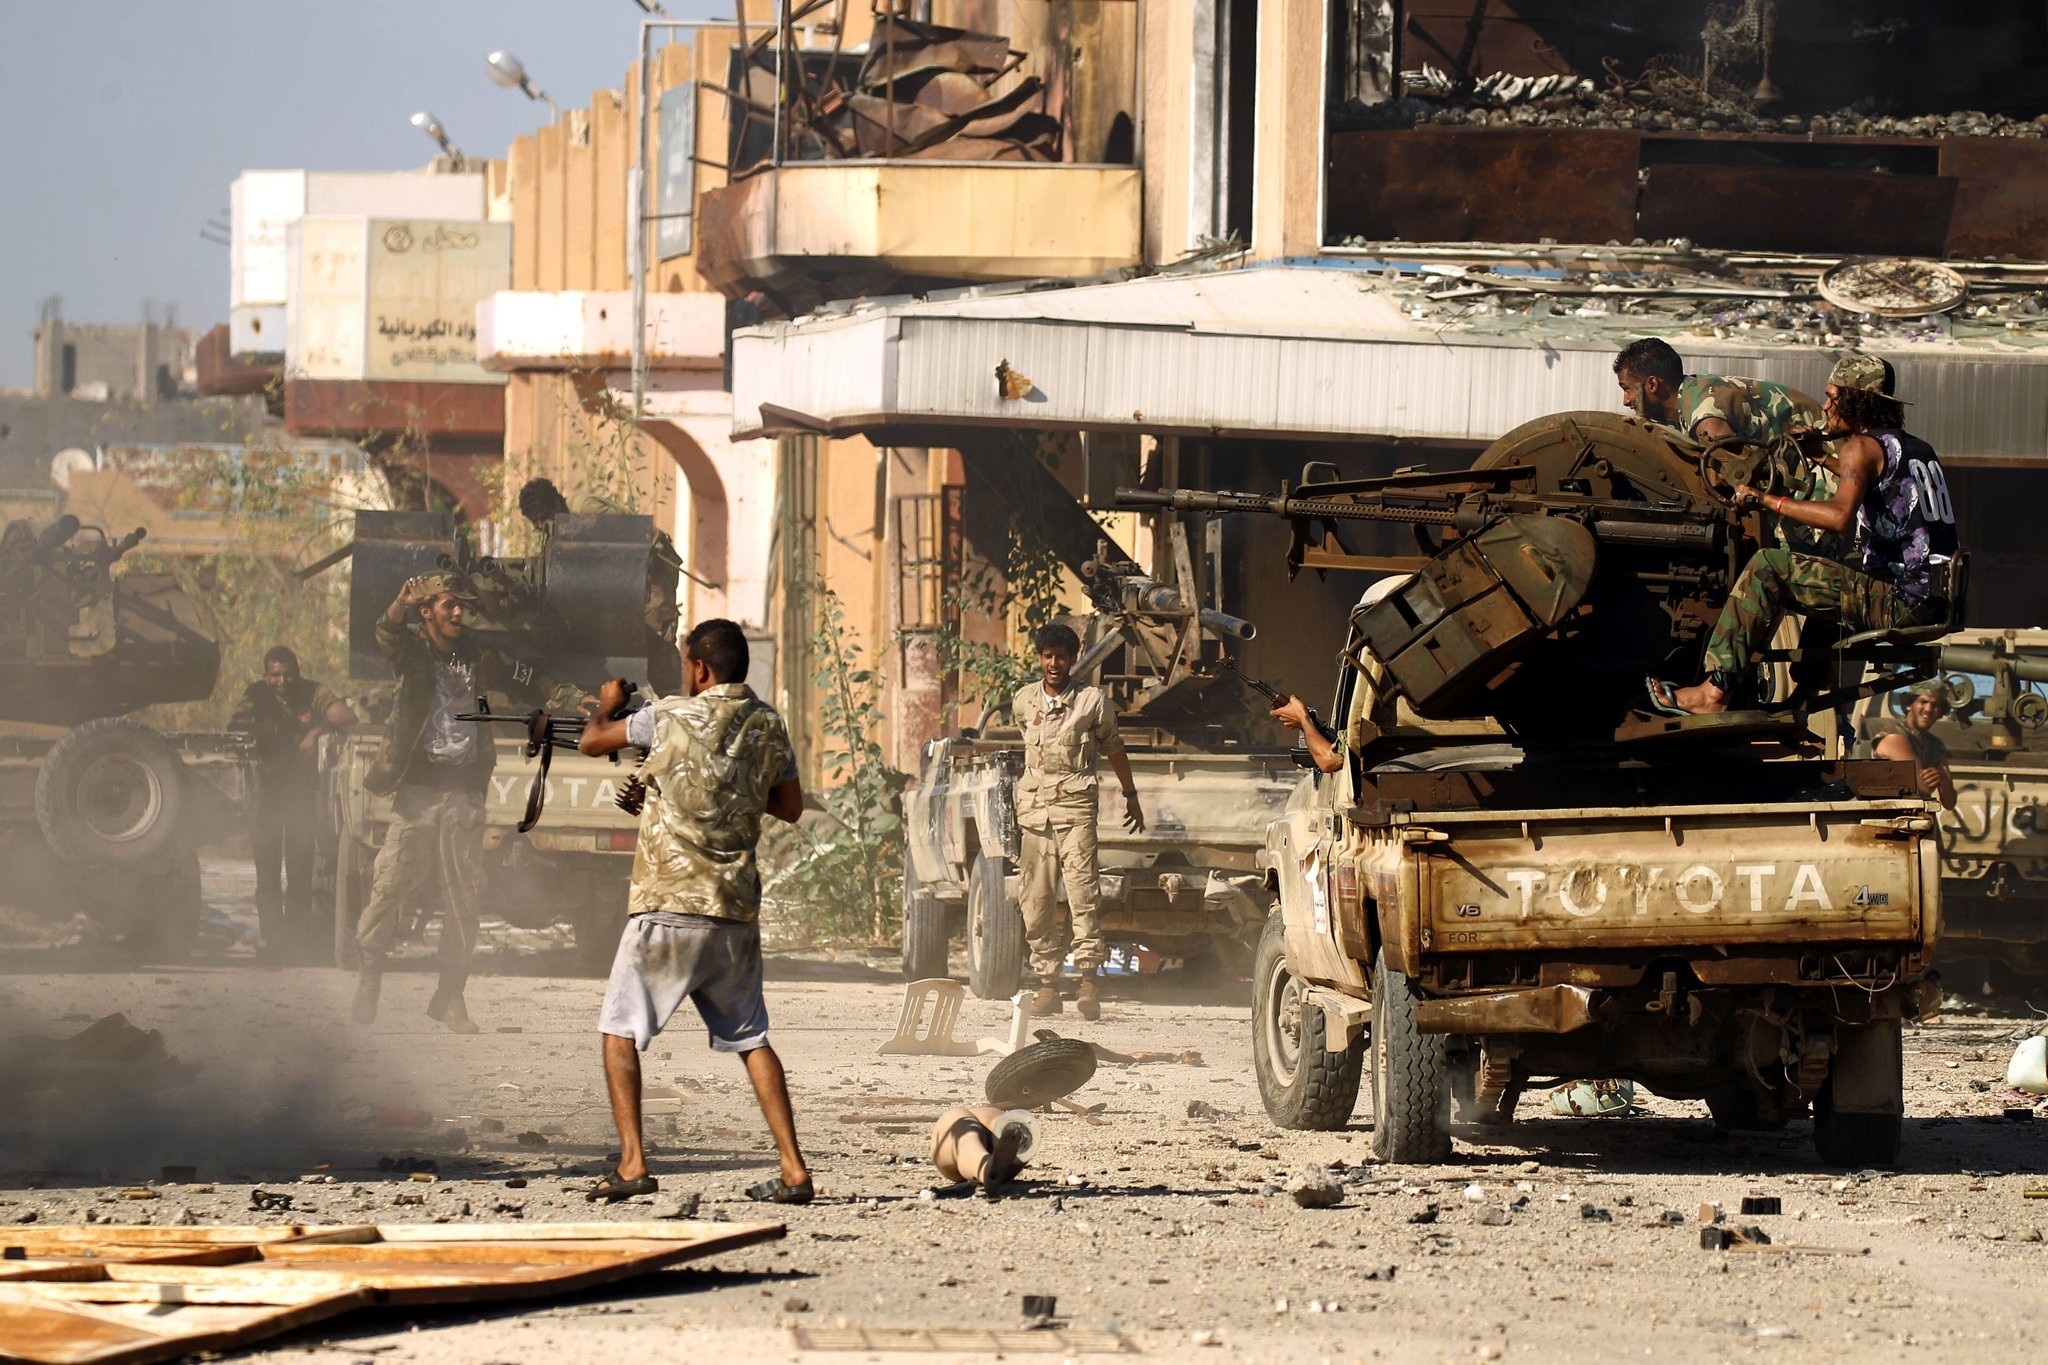 Members of the Libyan National Army (LNA), also known as the forces loyal to Marshal Khalifa Haftar, clash with opposing side in Benghazi's Al-Hout market area on May 20, 2017. (AFP Photo)